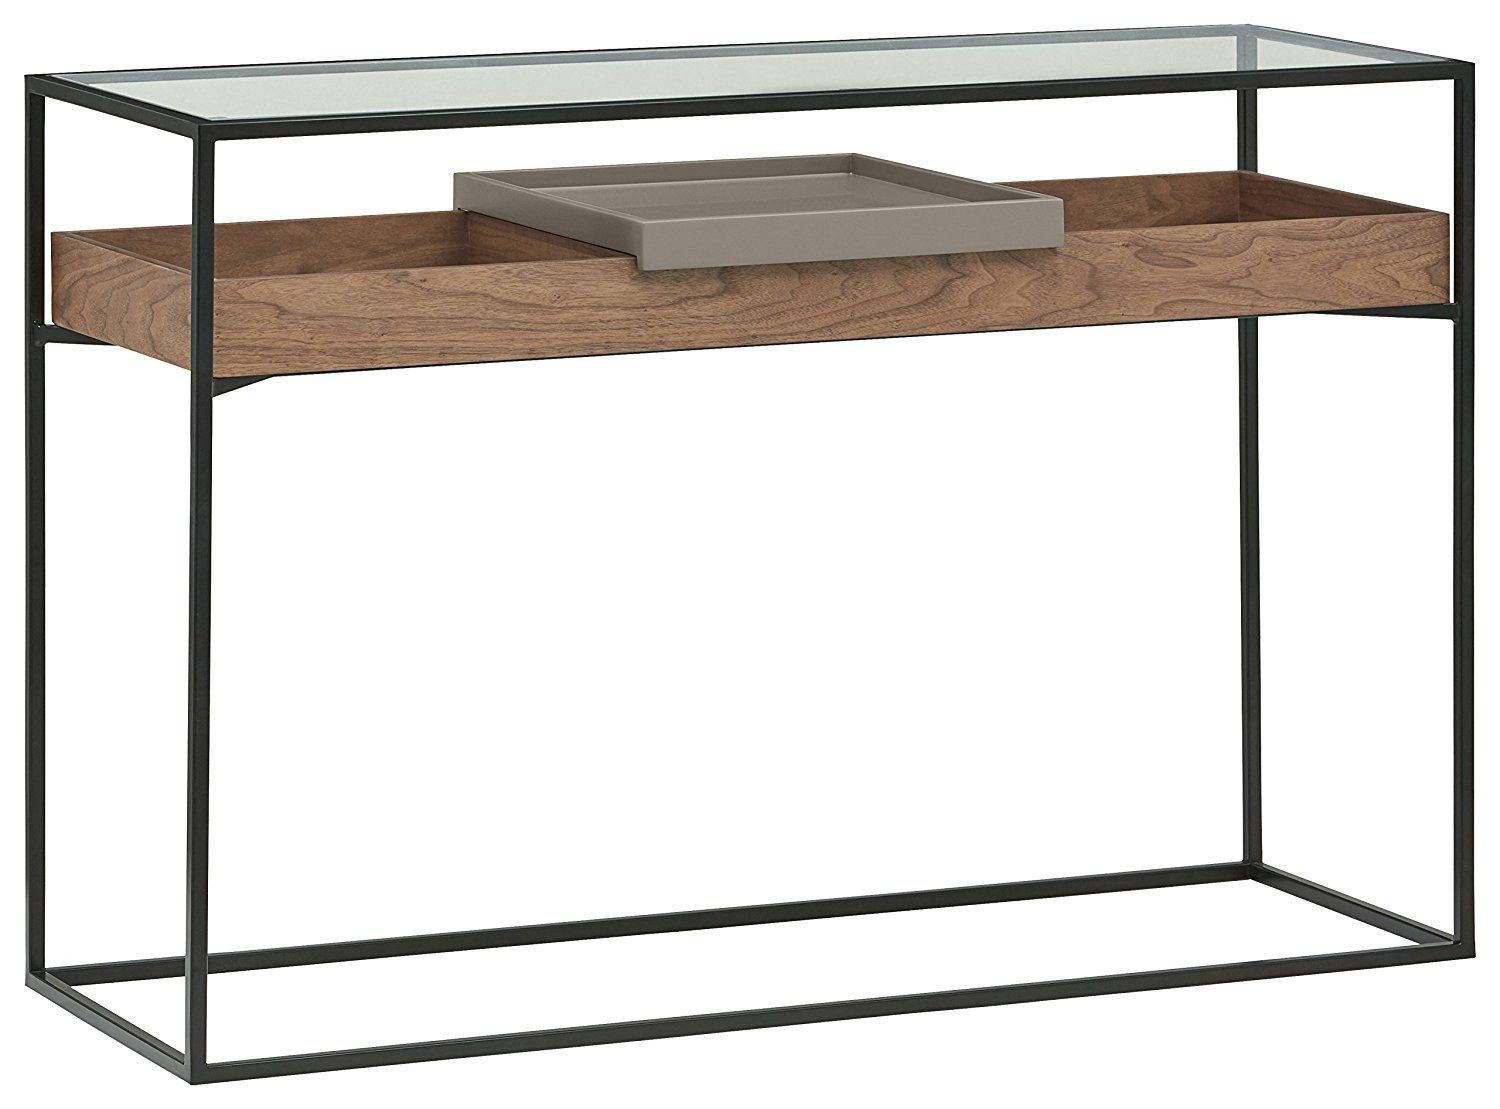 Amazon Com Rivet King Street Industrial Cabinet Media Console Table With Functional Storage Walnut Blac Industrial Cabinet Media Console Table Console Table